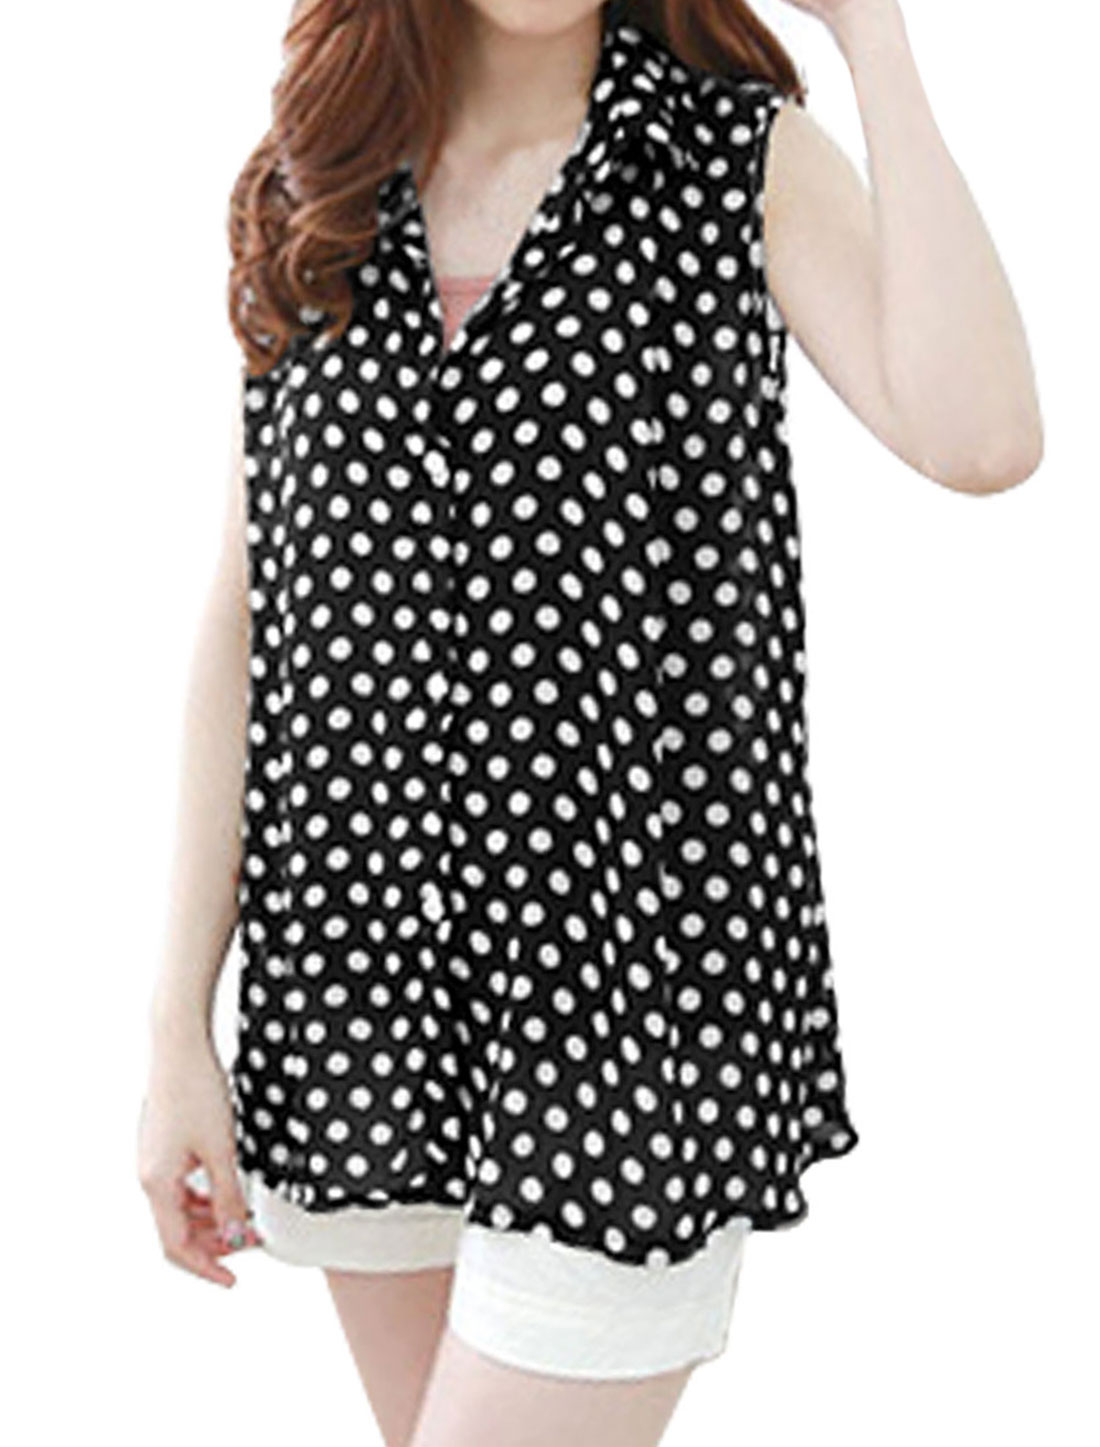 Lady Sleeveless Dots Print Button Down Casual Chiffon Blouse Black White S